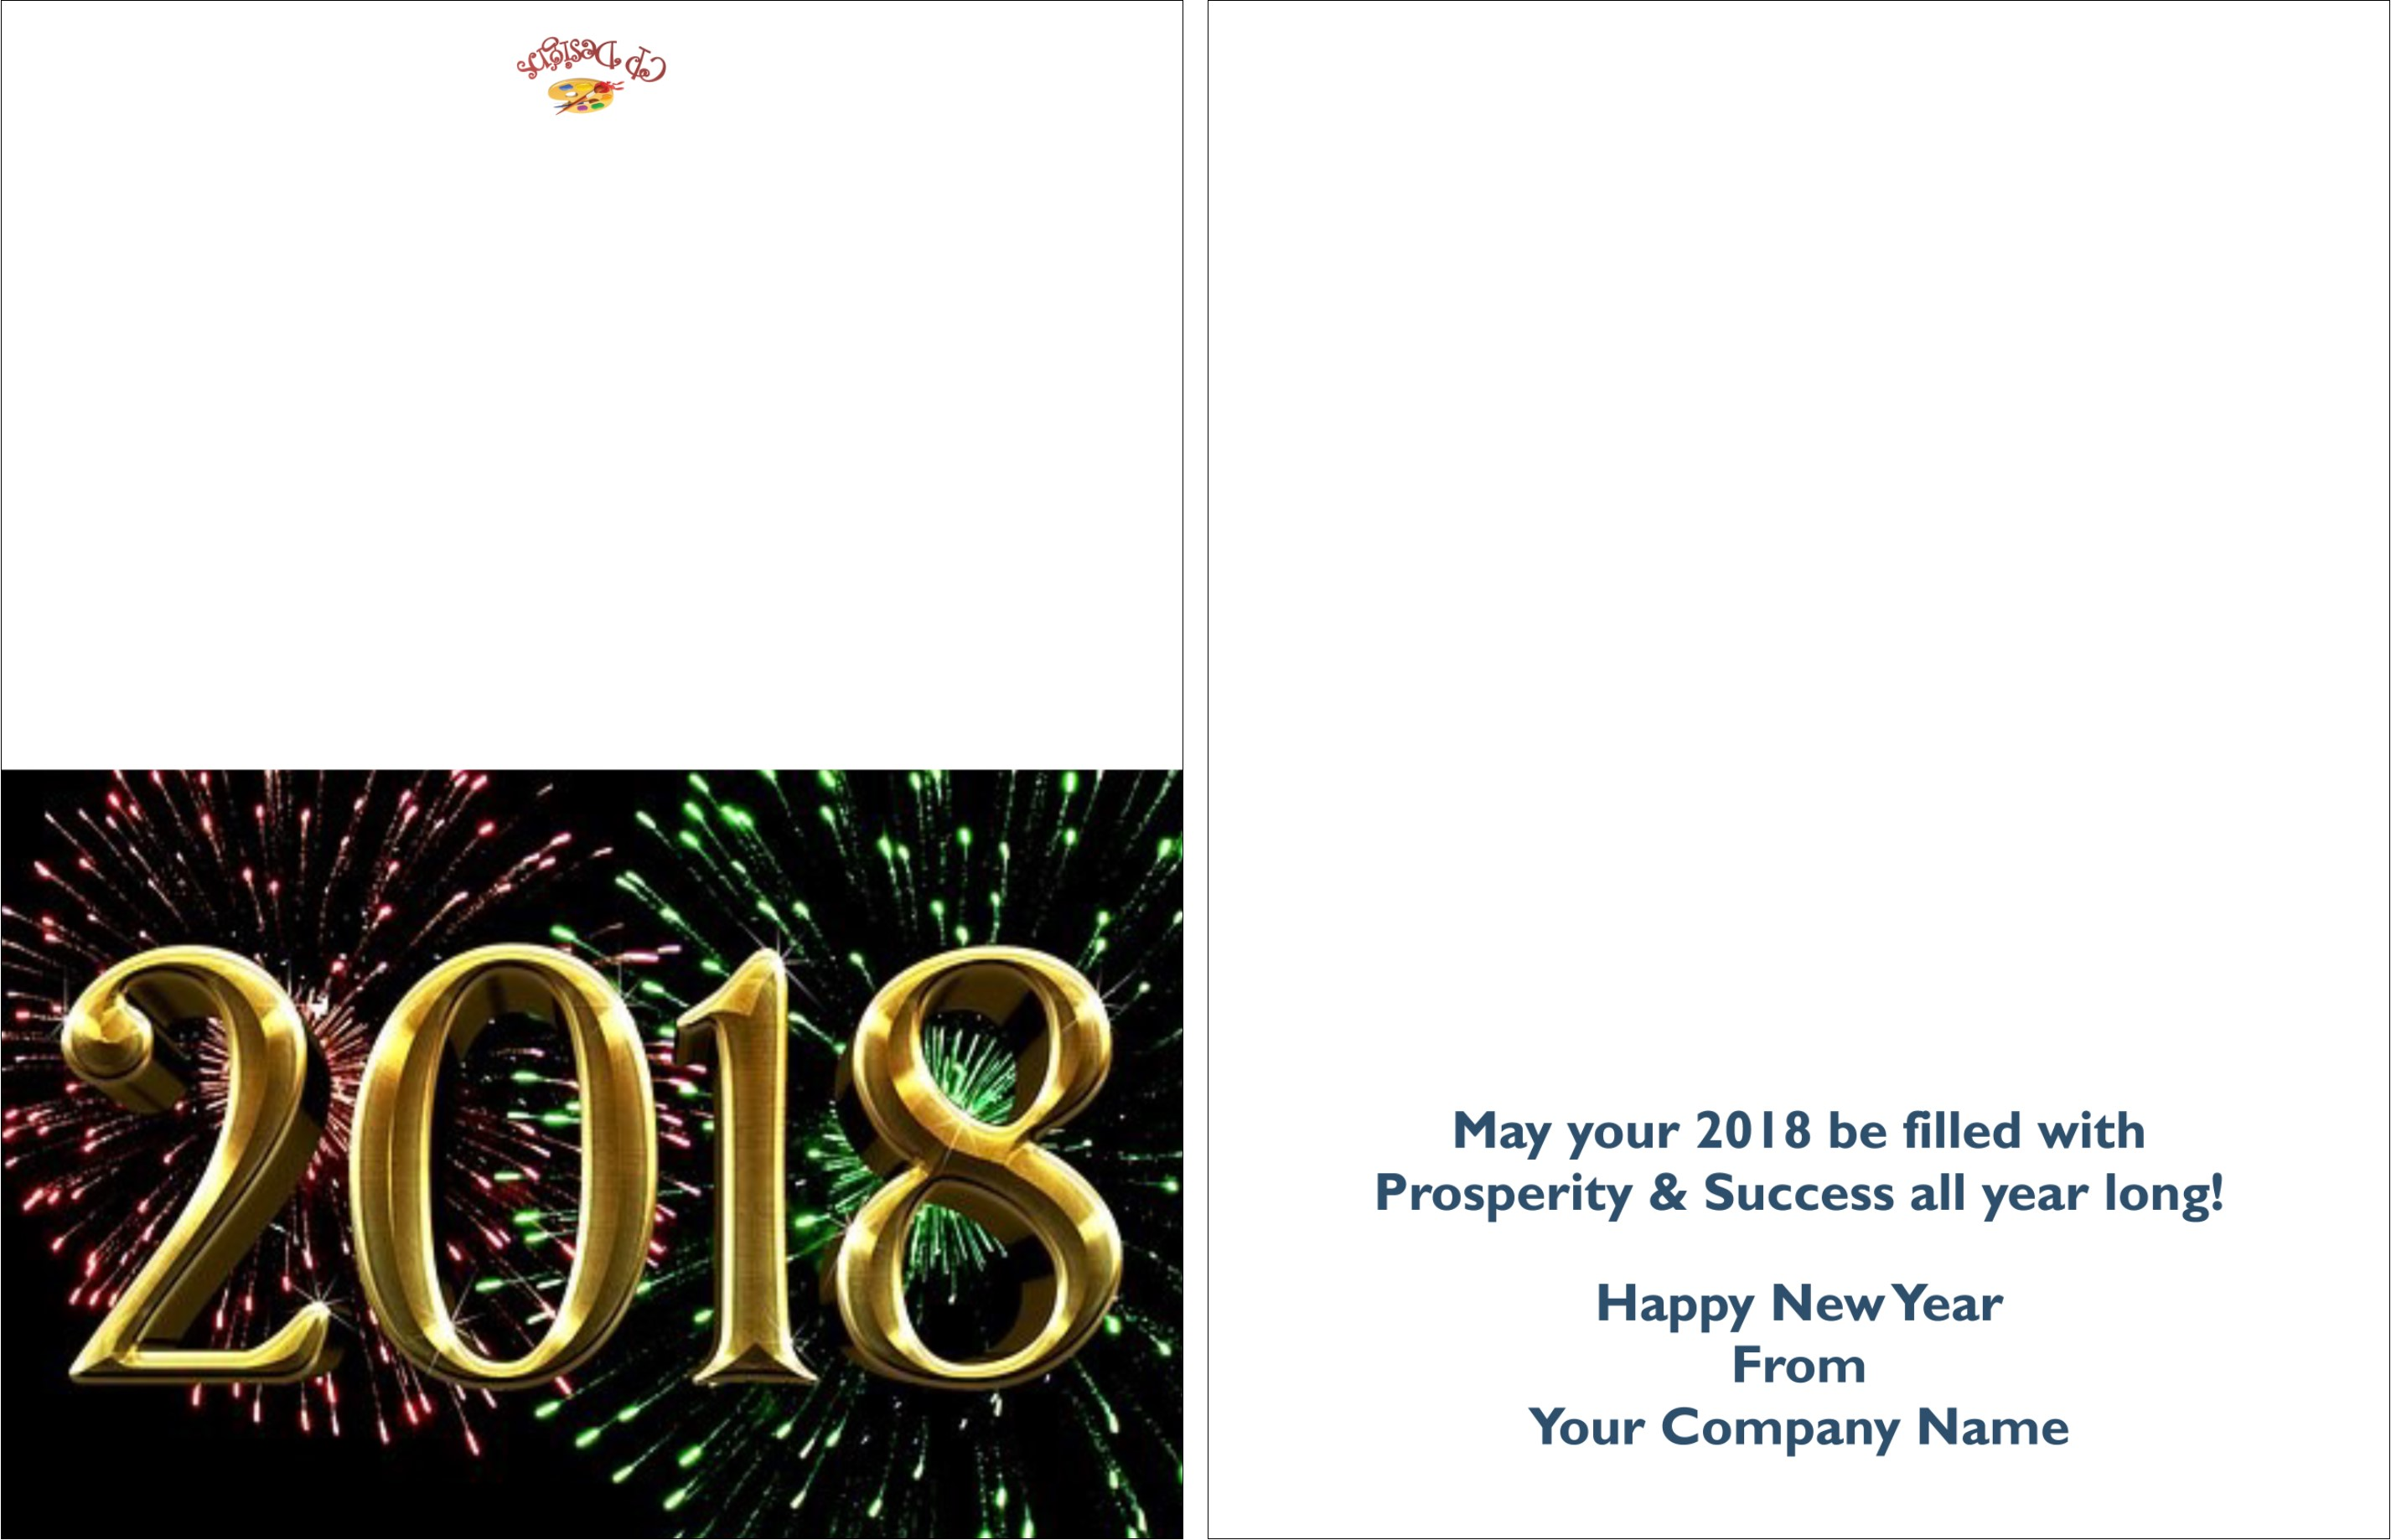 New years greeting cards creative presse hpn1 kristyandbryce Images